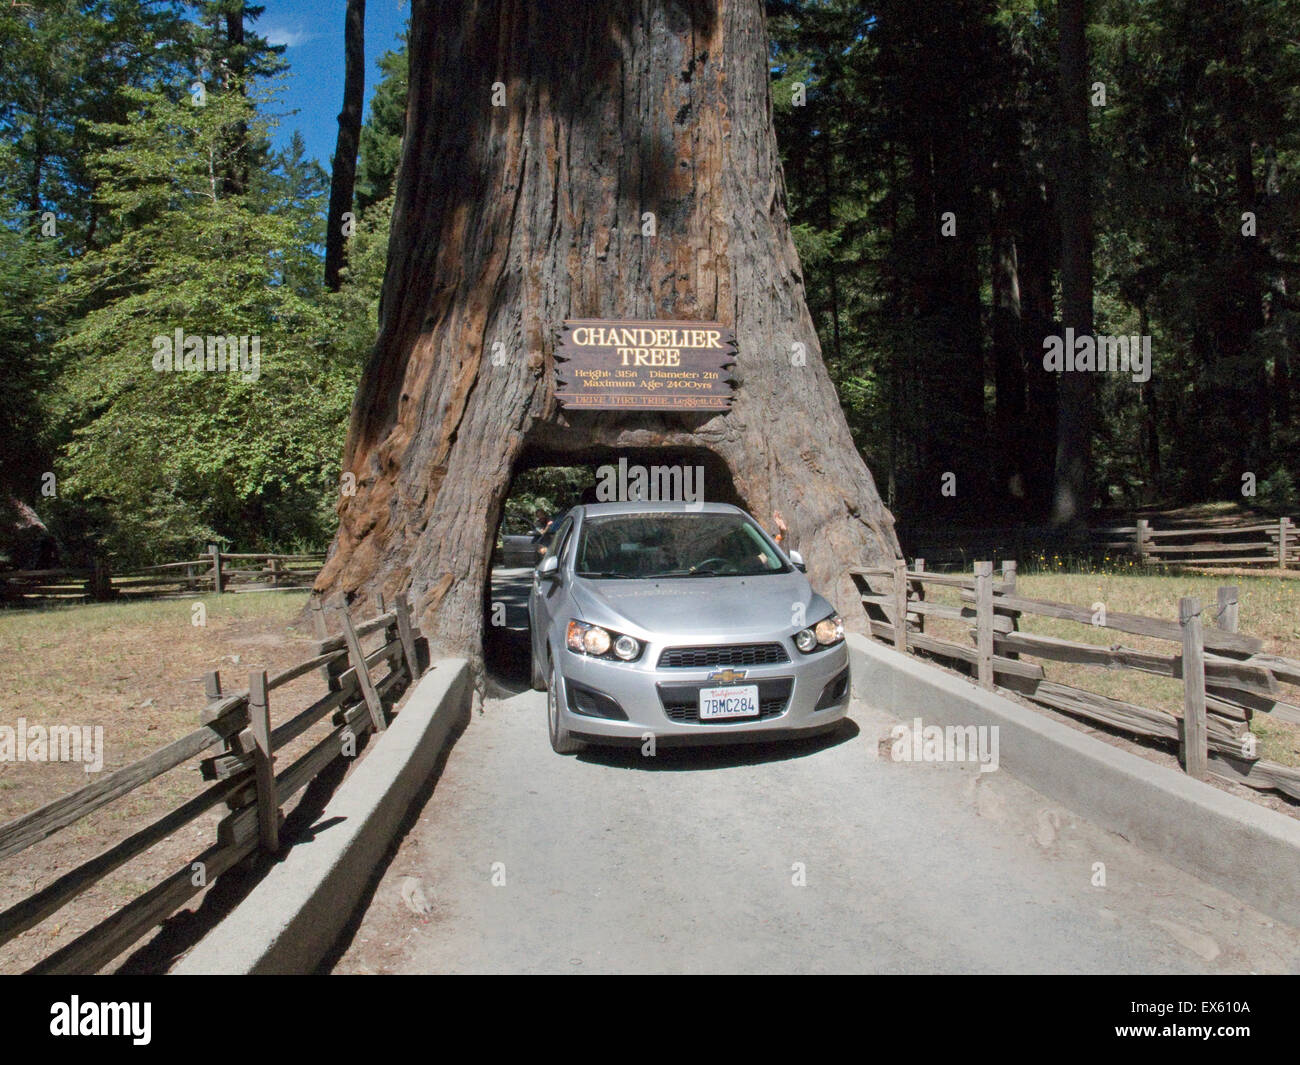 Leggett california chandelier tree in drive thru tree park a leggett california chandelier tree in drive thru tree park a coast redwood arubaitofo Images